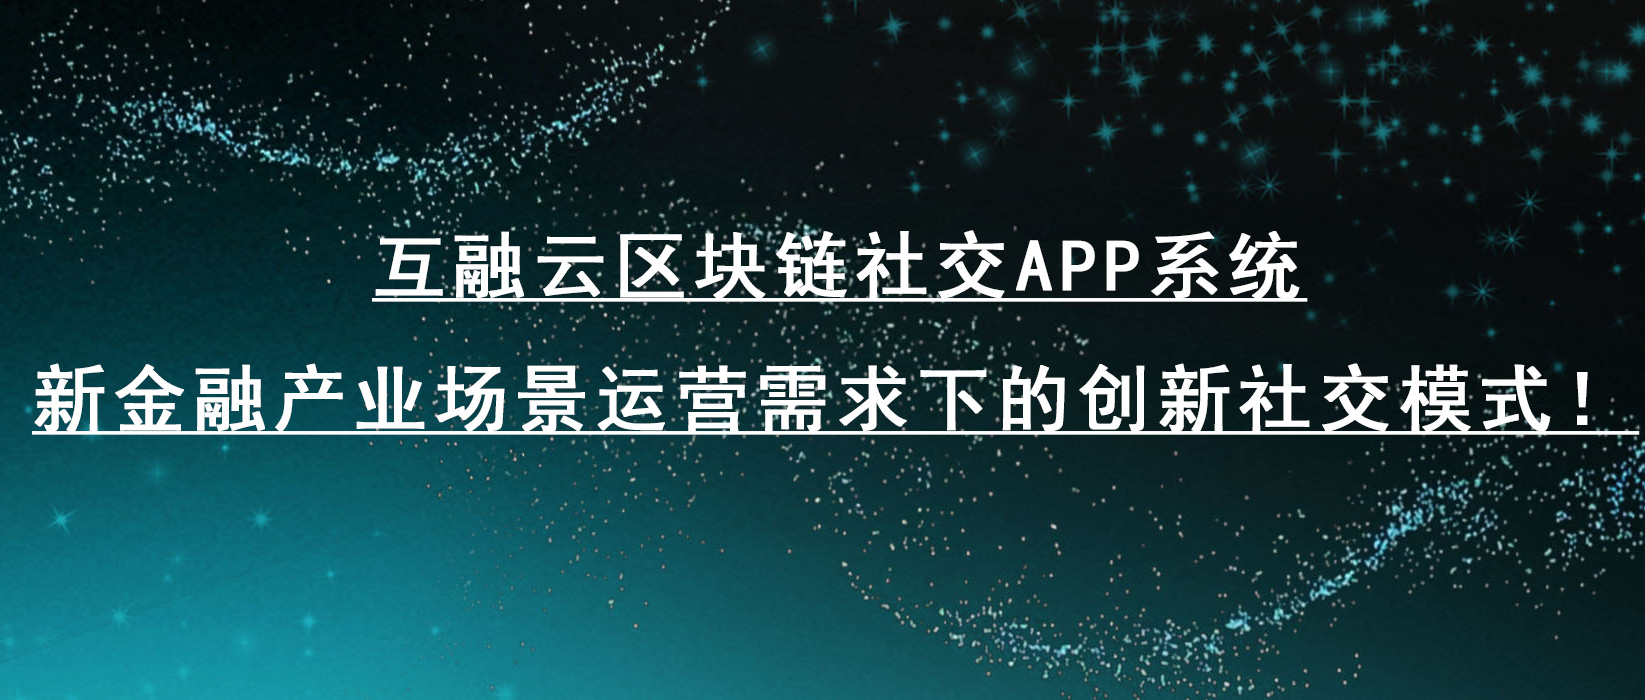 http://www.hurongsoft.com/attachFiles/p2p_article/p2p_article/53253969519538994482076968302128/20190125141334115.jpg